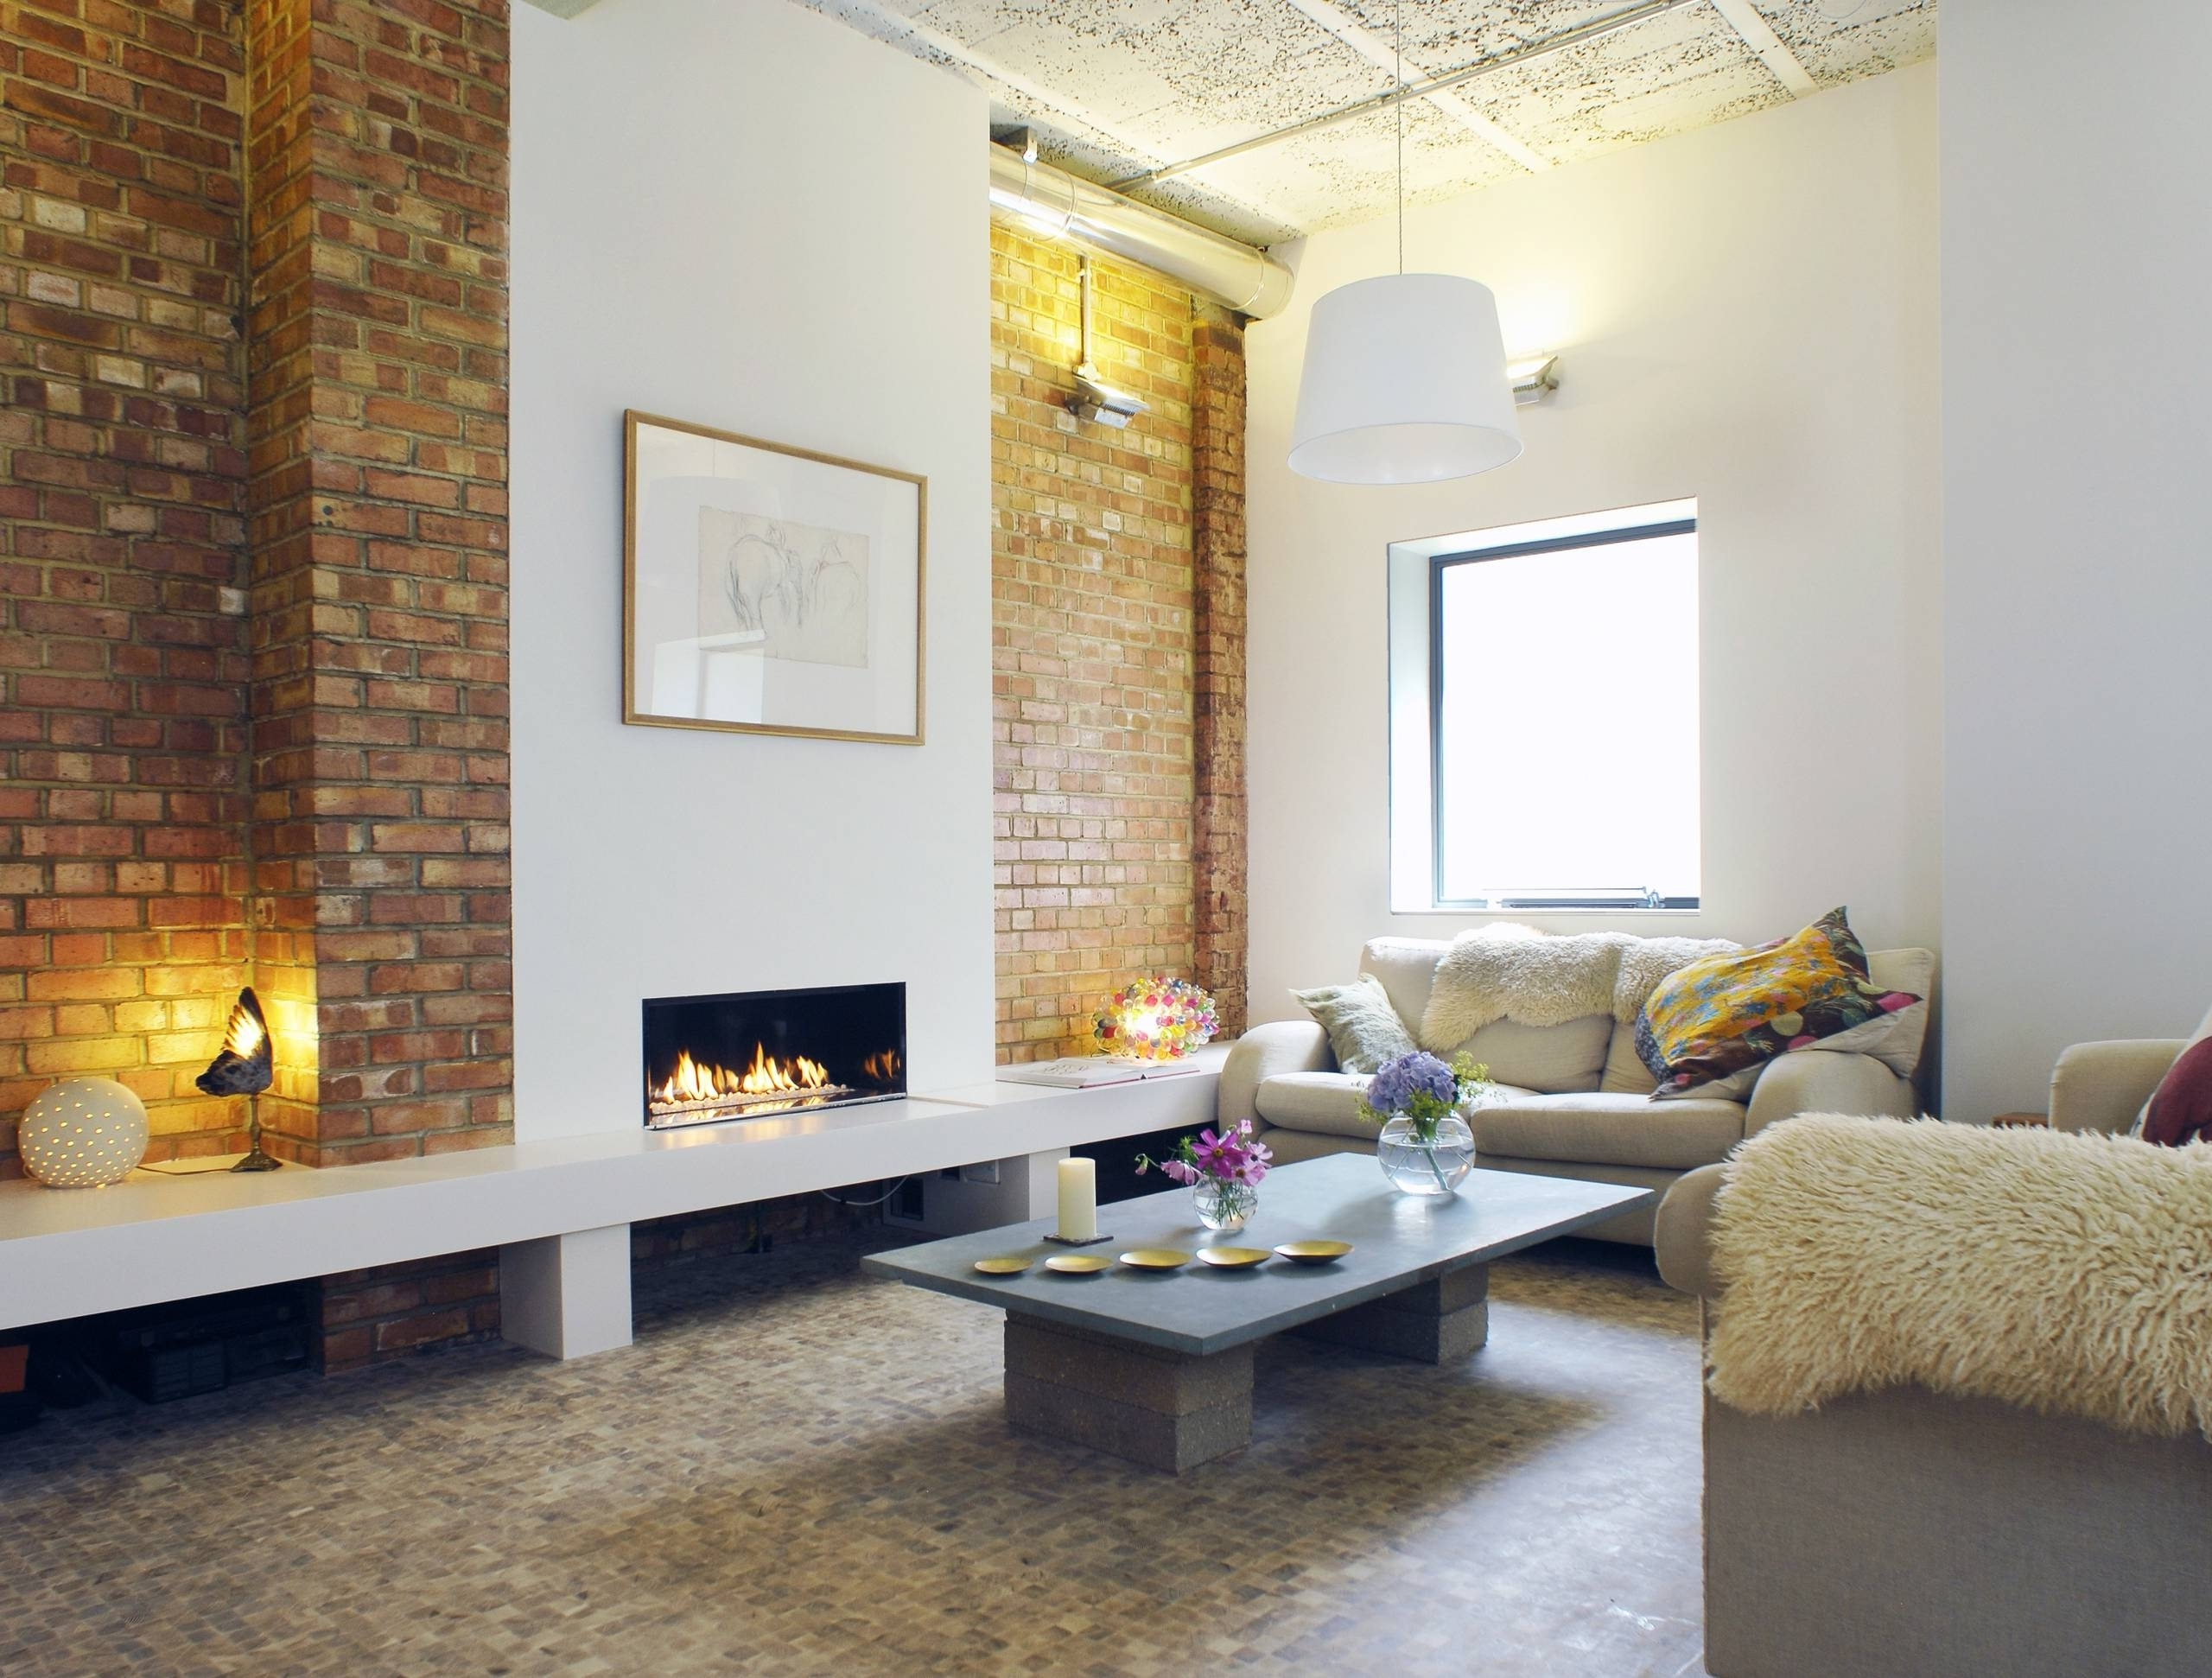 Chimney Breast Contemporary | Houzz 30+ Small Living Room With Chimney Breast Inspirations